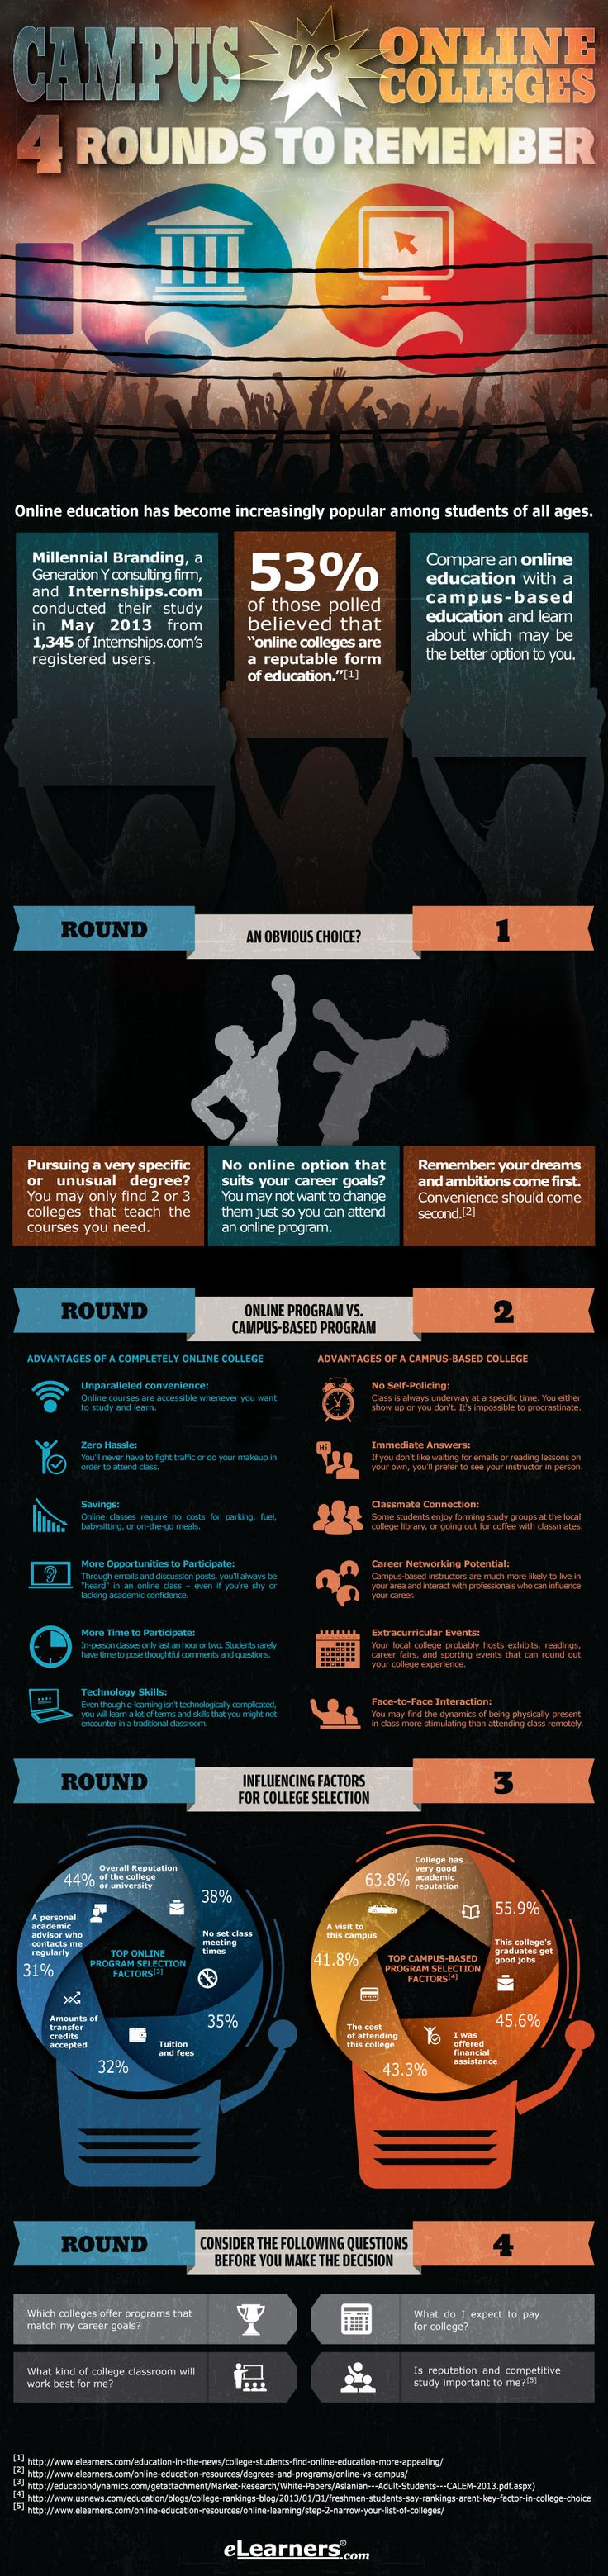 The Campus vs Online Colleges Infographic outlines